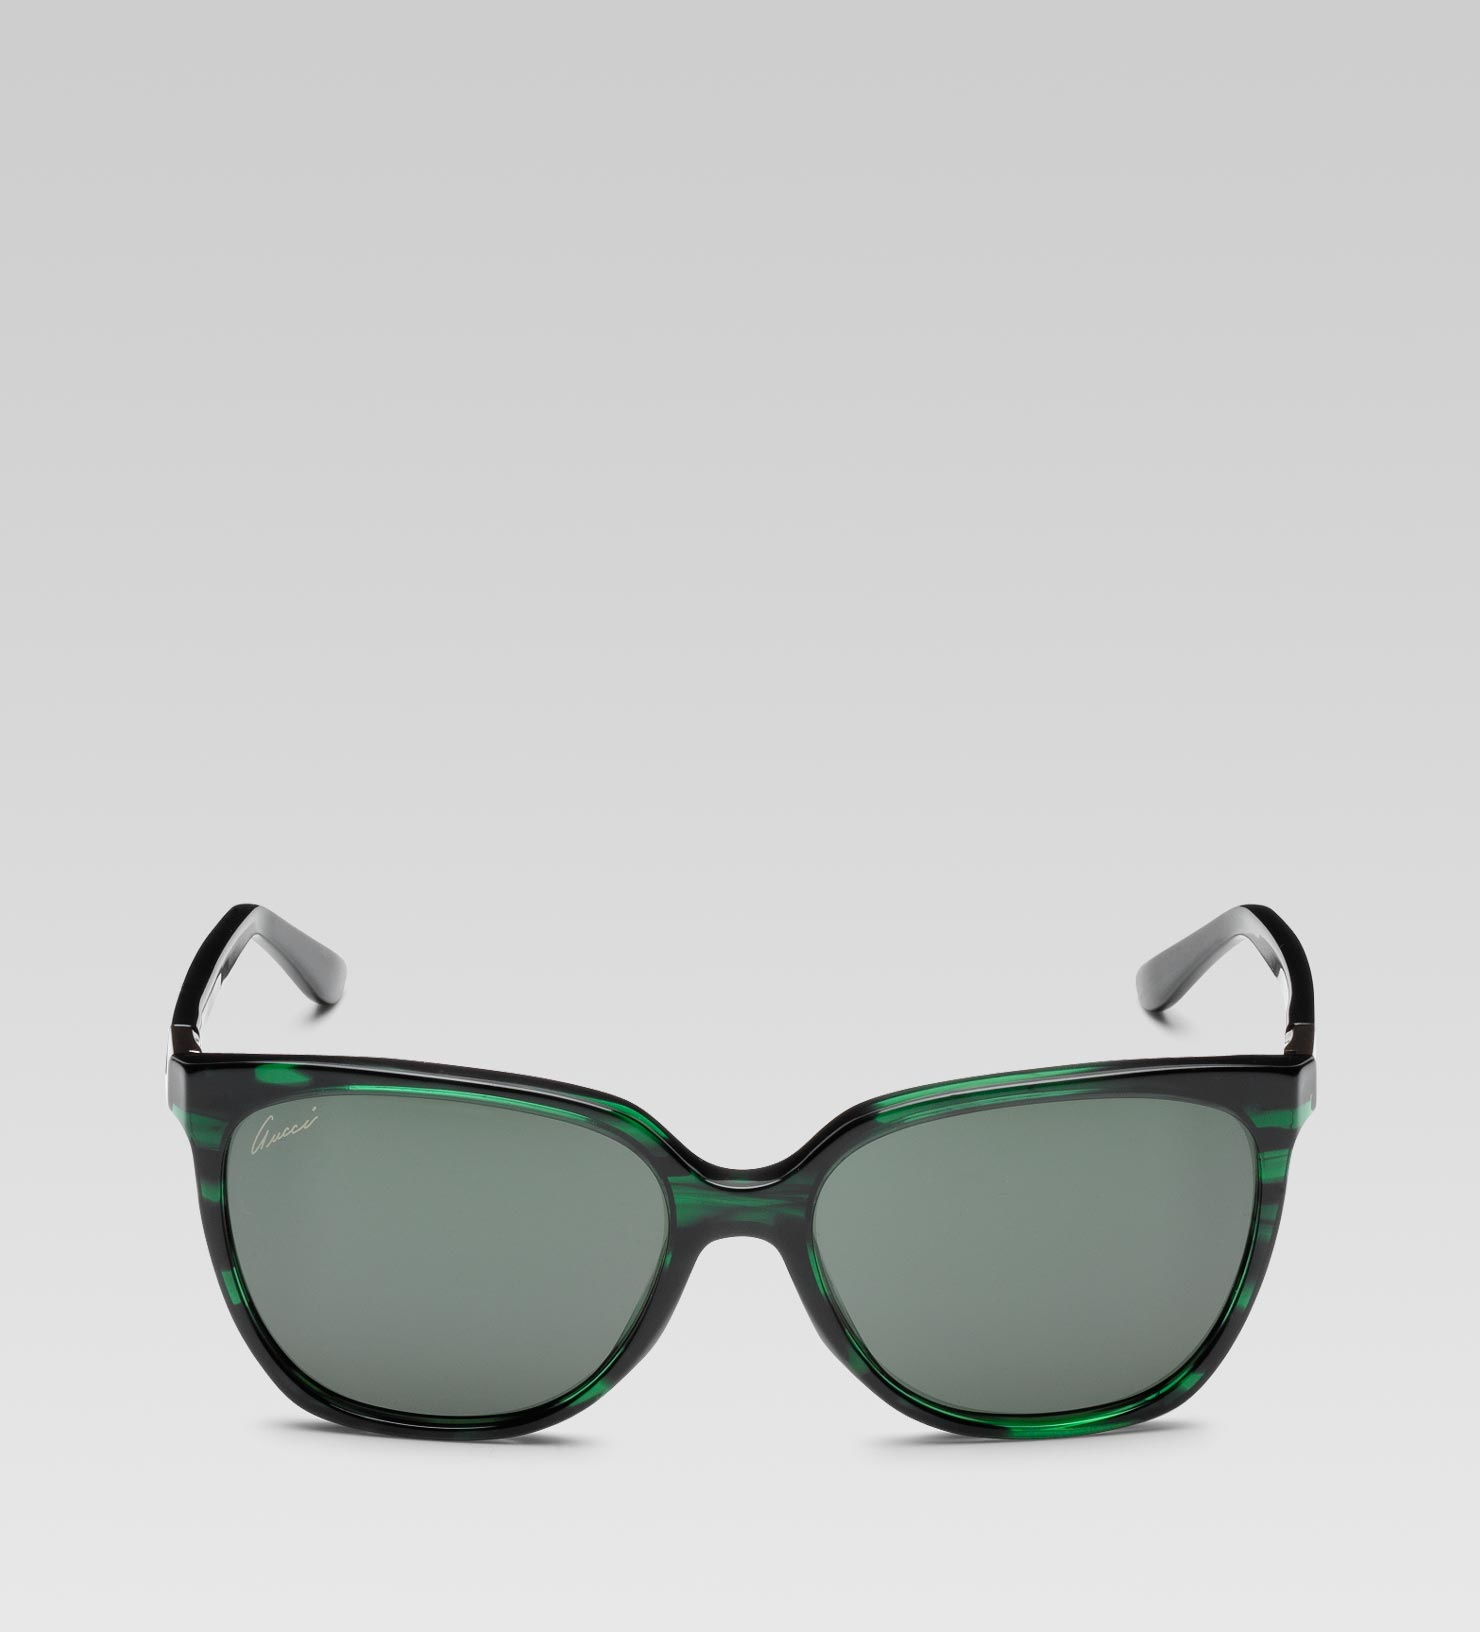 5626b45c66 Gucci Medium Square Frame Sunglasses with Gucci Web Plaque Logo and ...